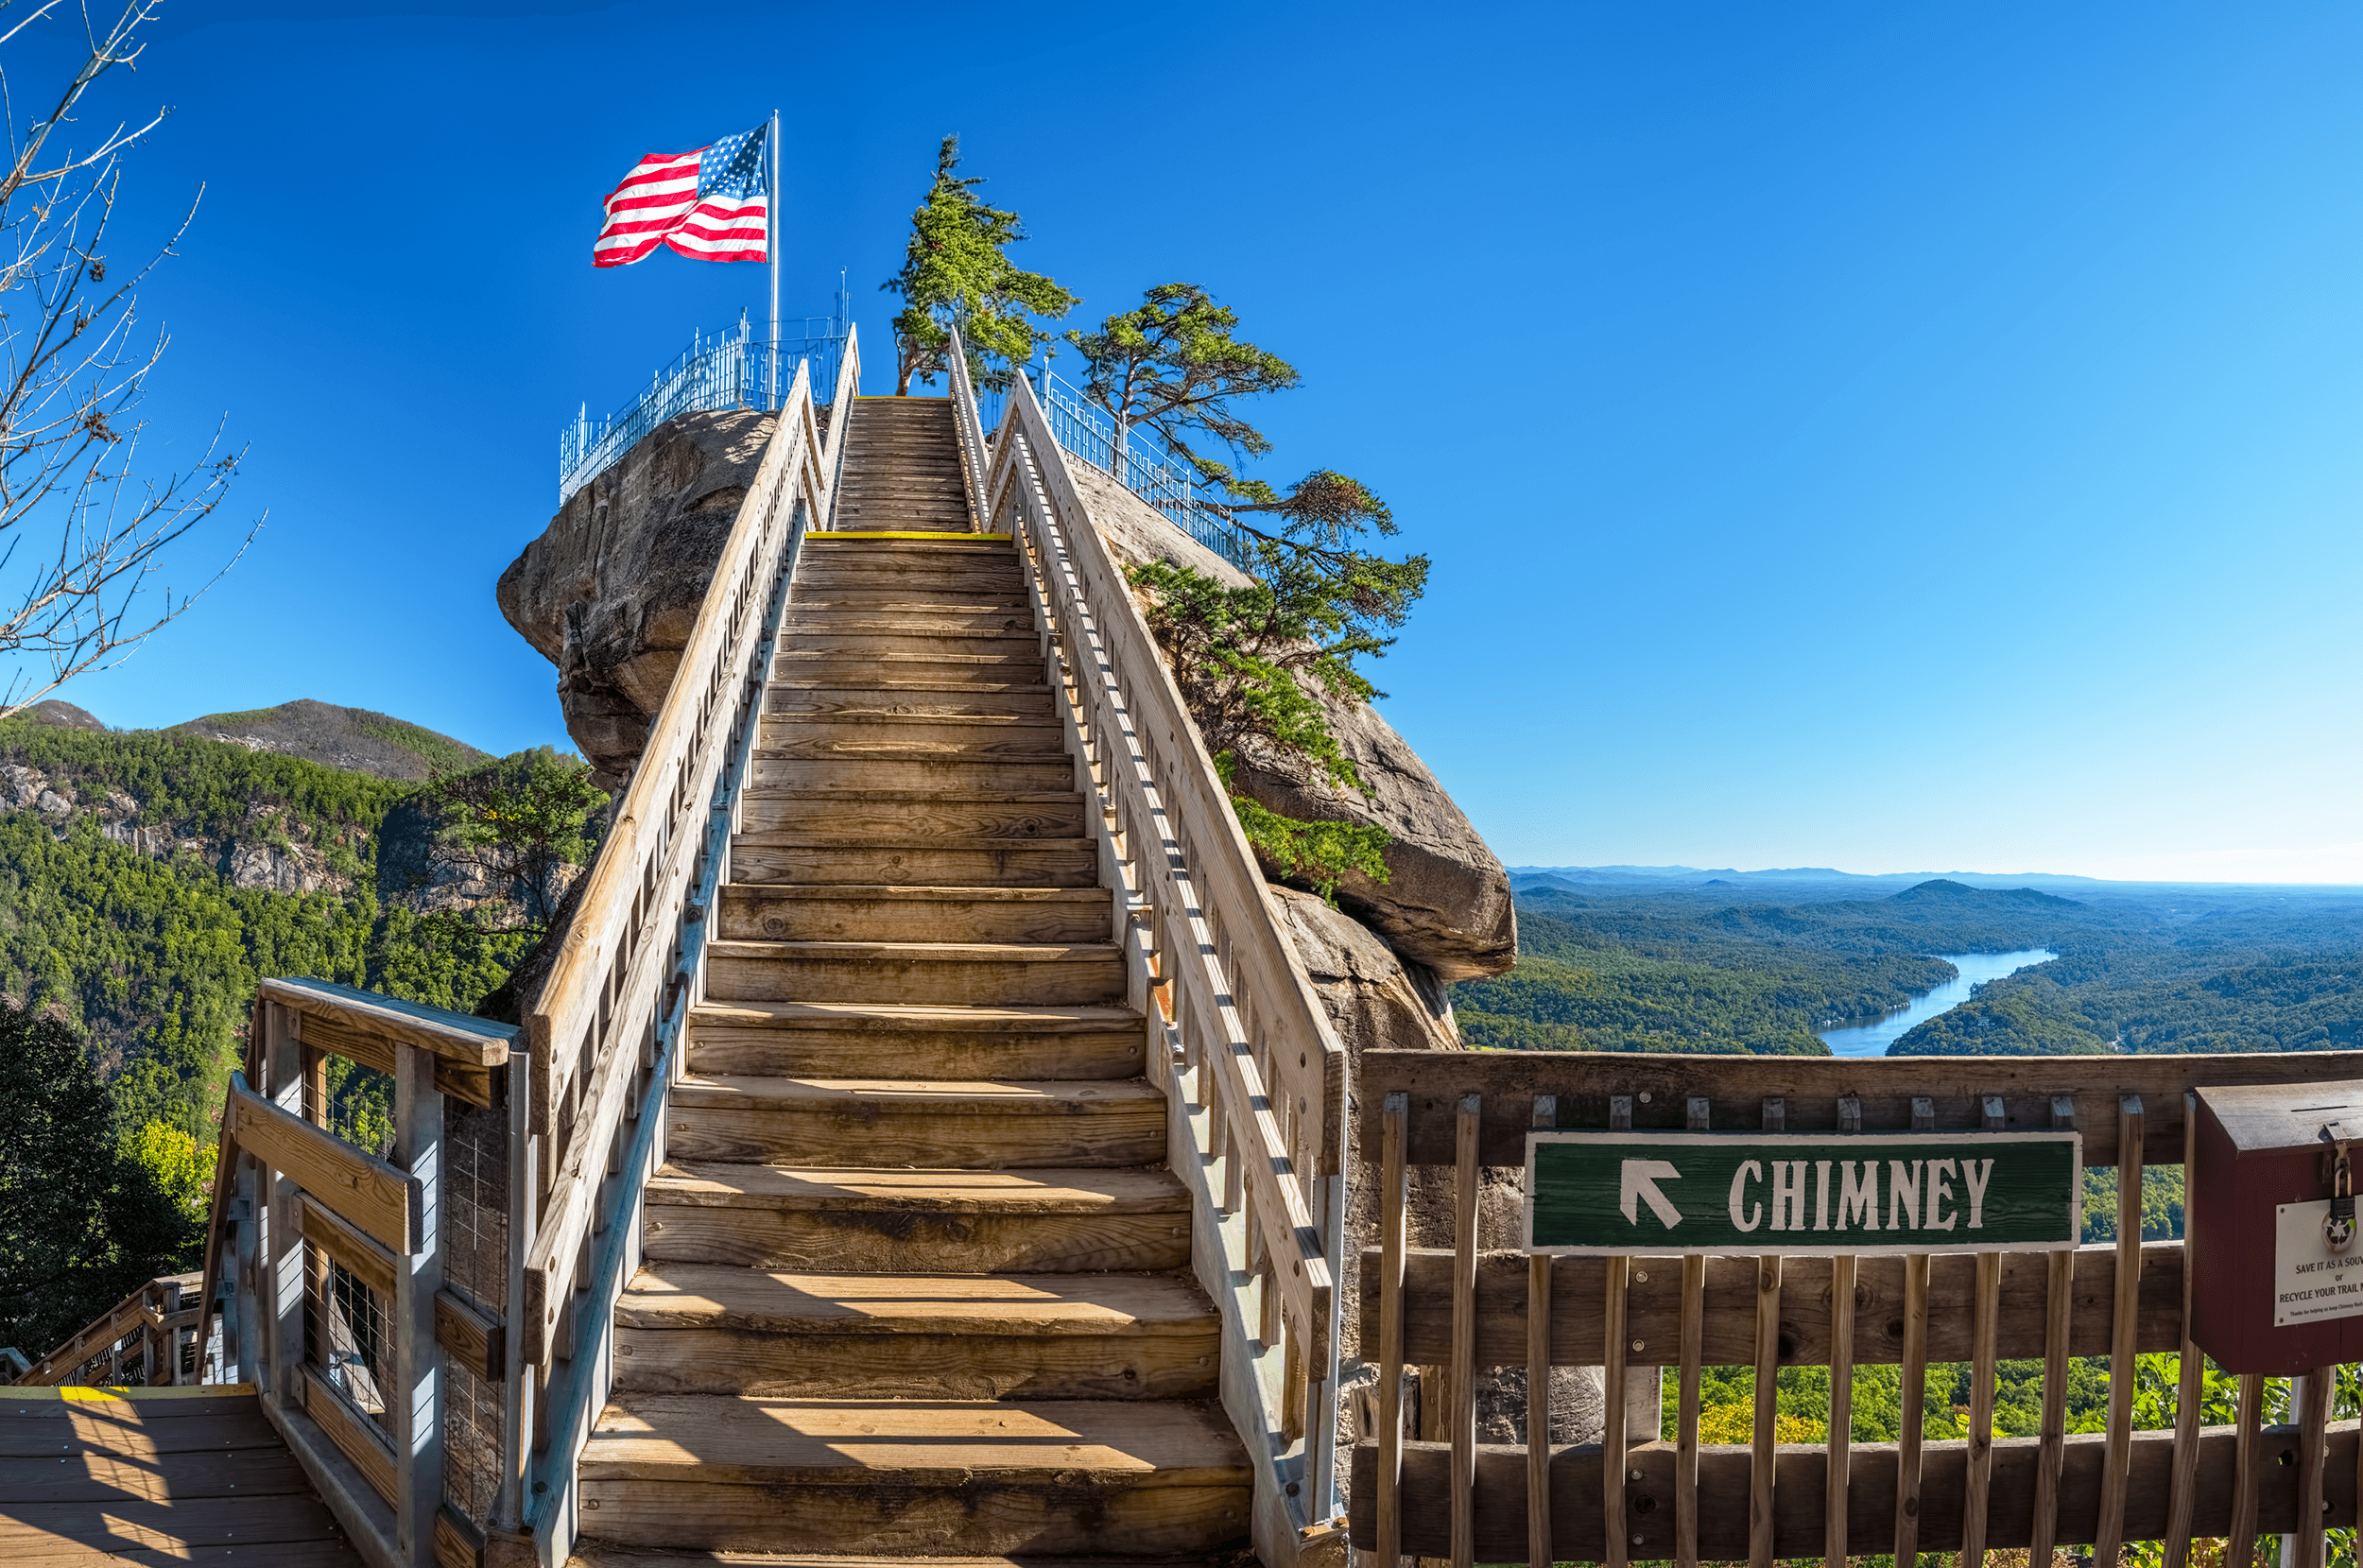 The last few steps to the top of  Chimney Rock . Once there, you have not only conquered the 499 steps but also have reached an elevation of 2,280 feet (695 meters), from where you can enjoy incredible views.